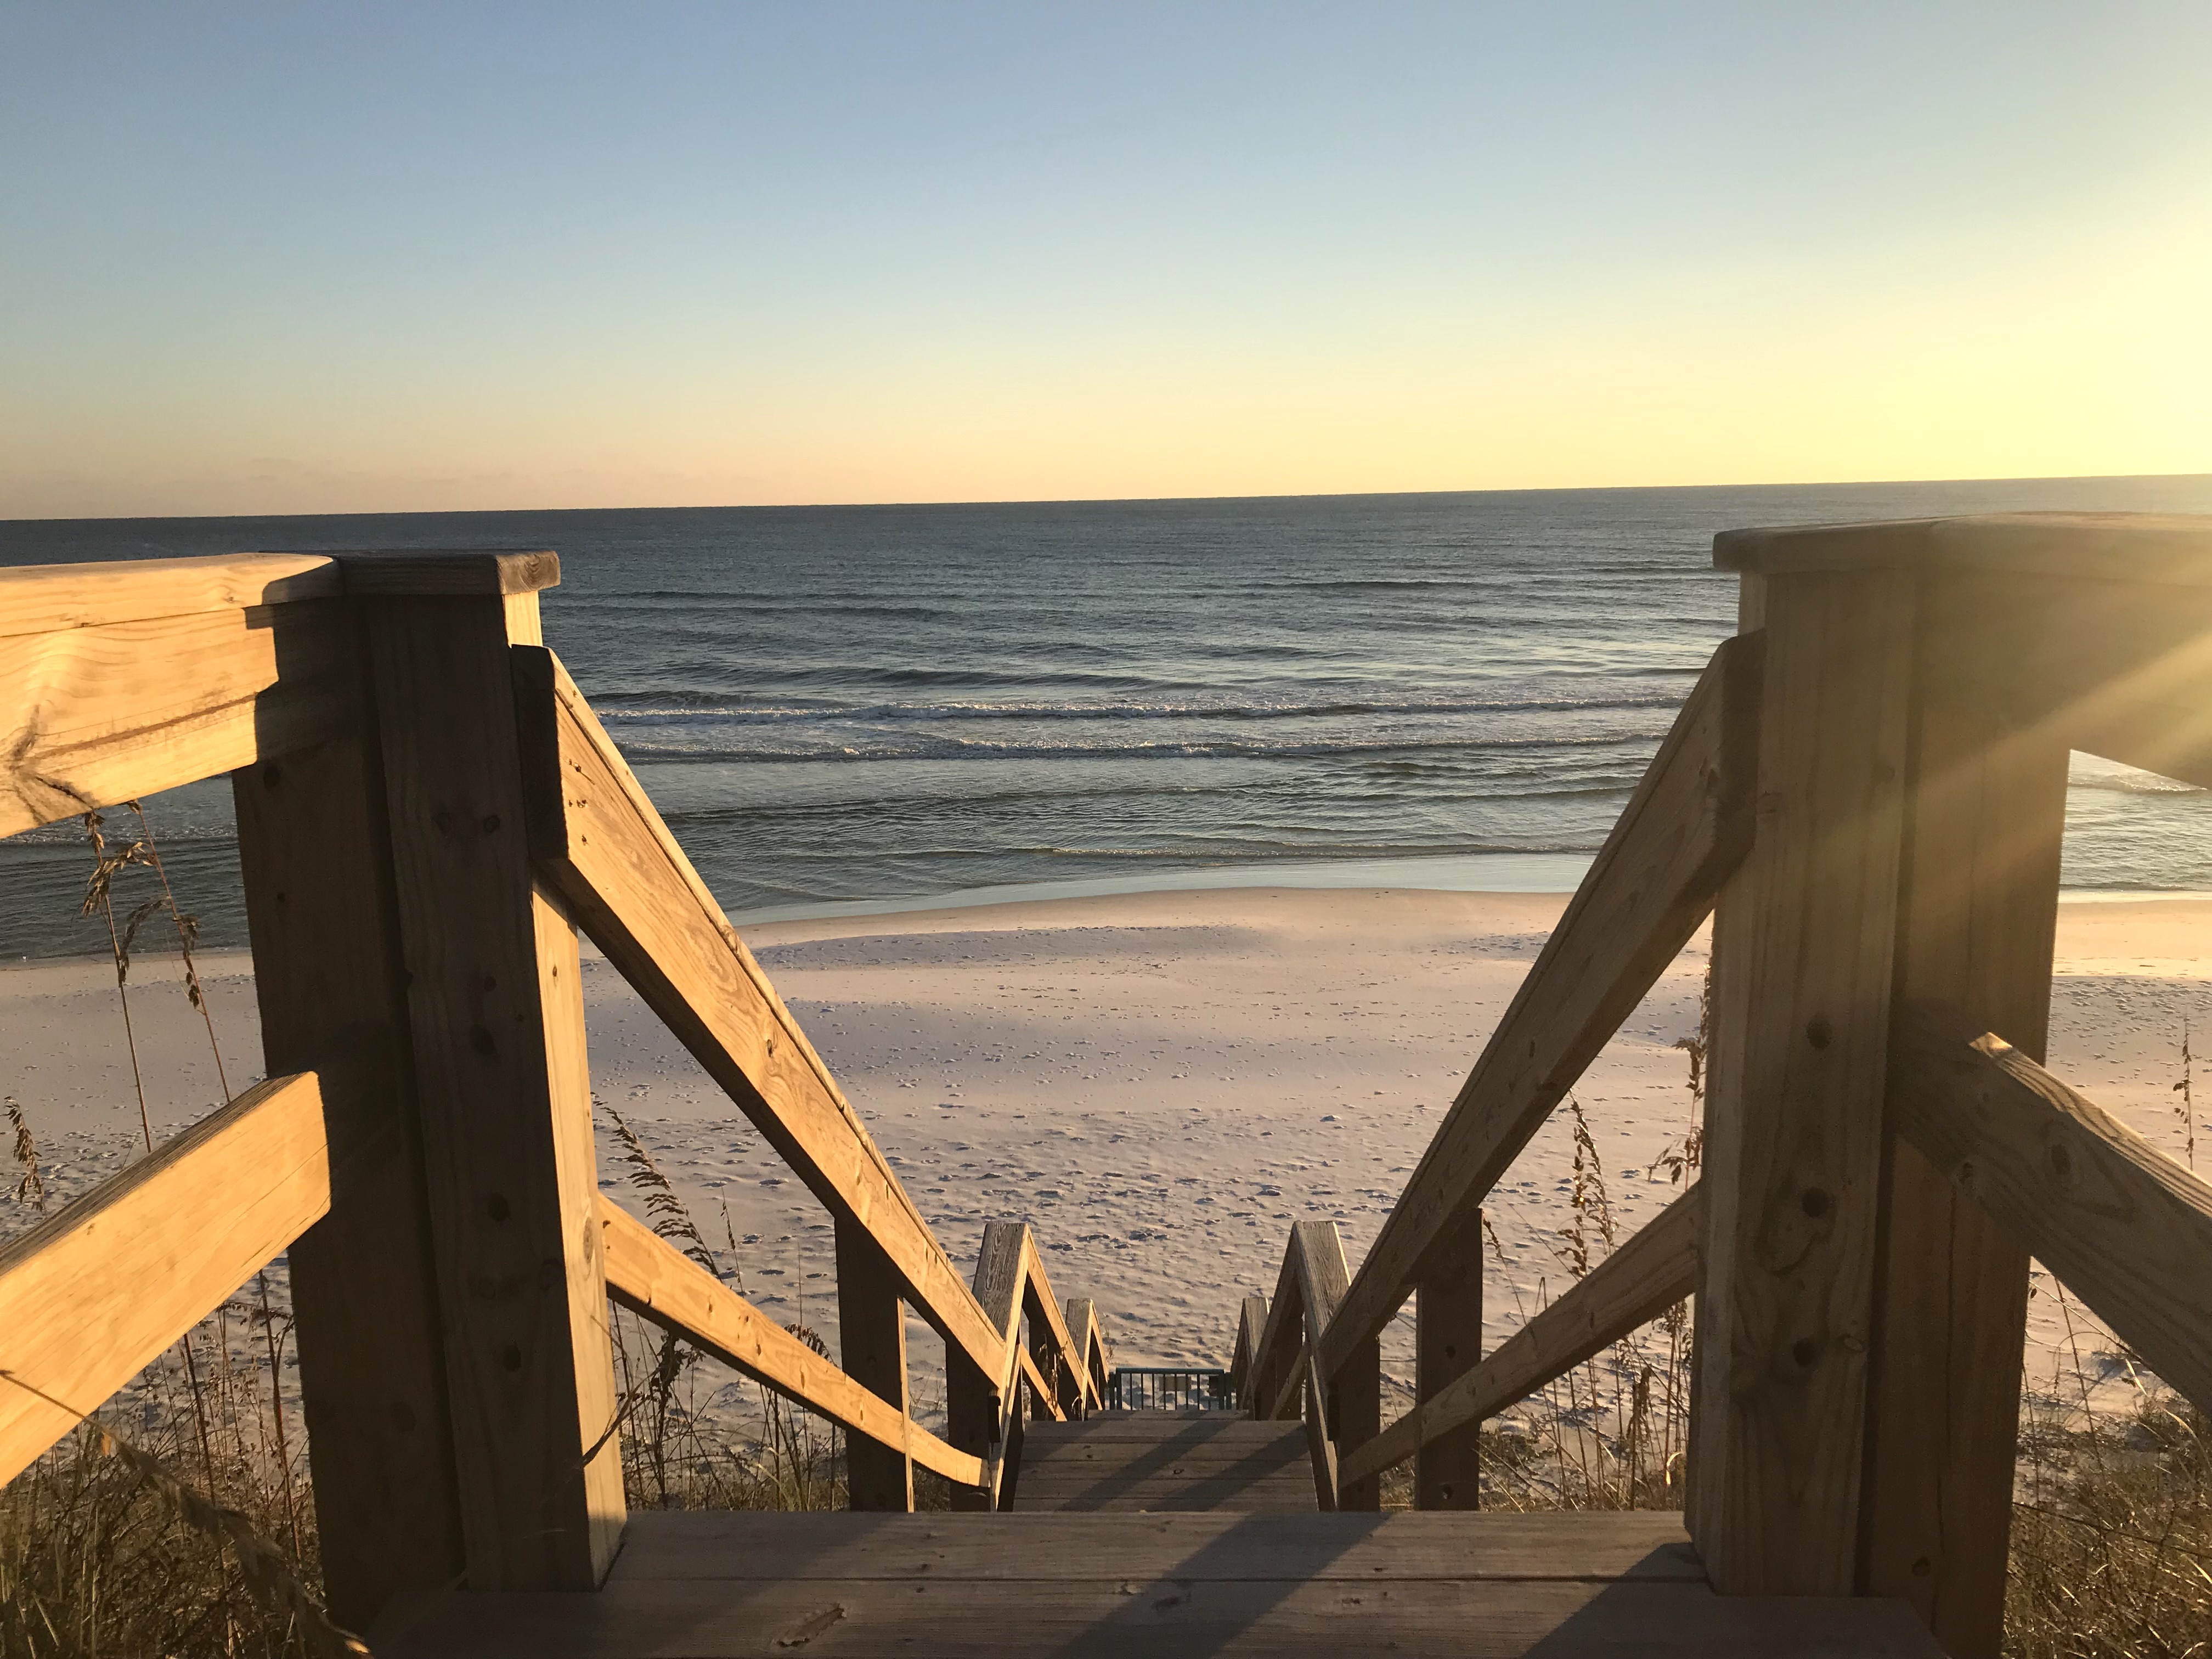 Stairway down to the beach